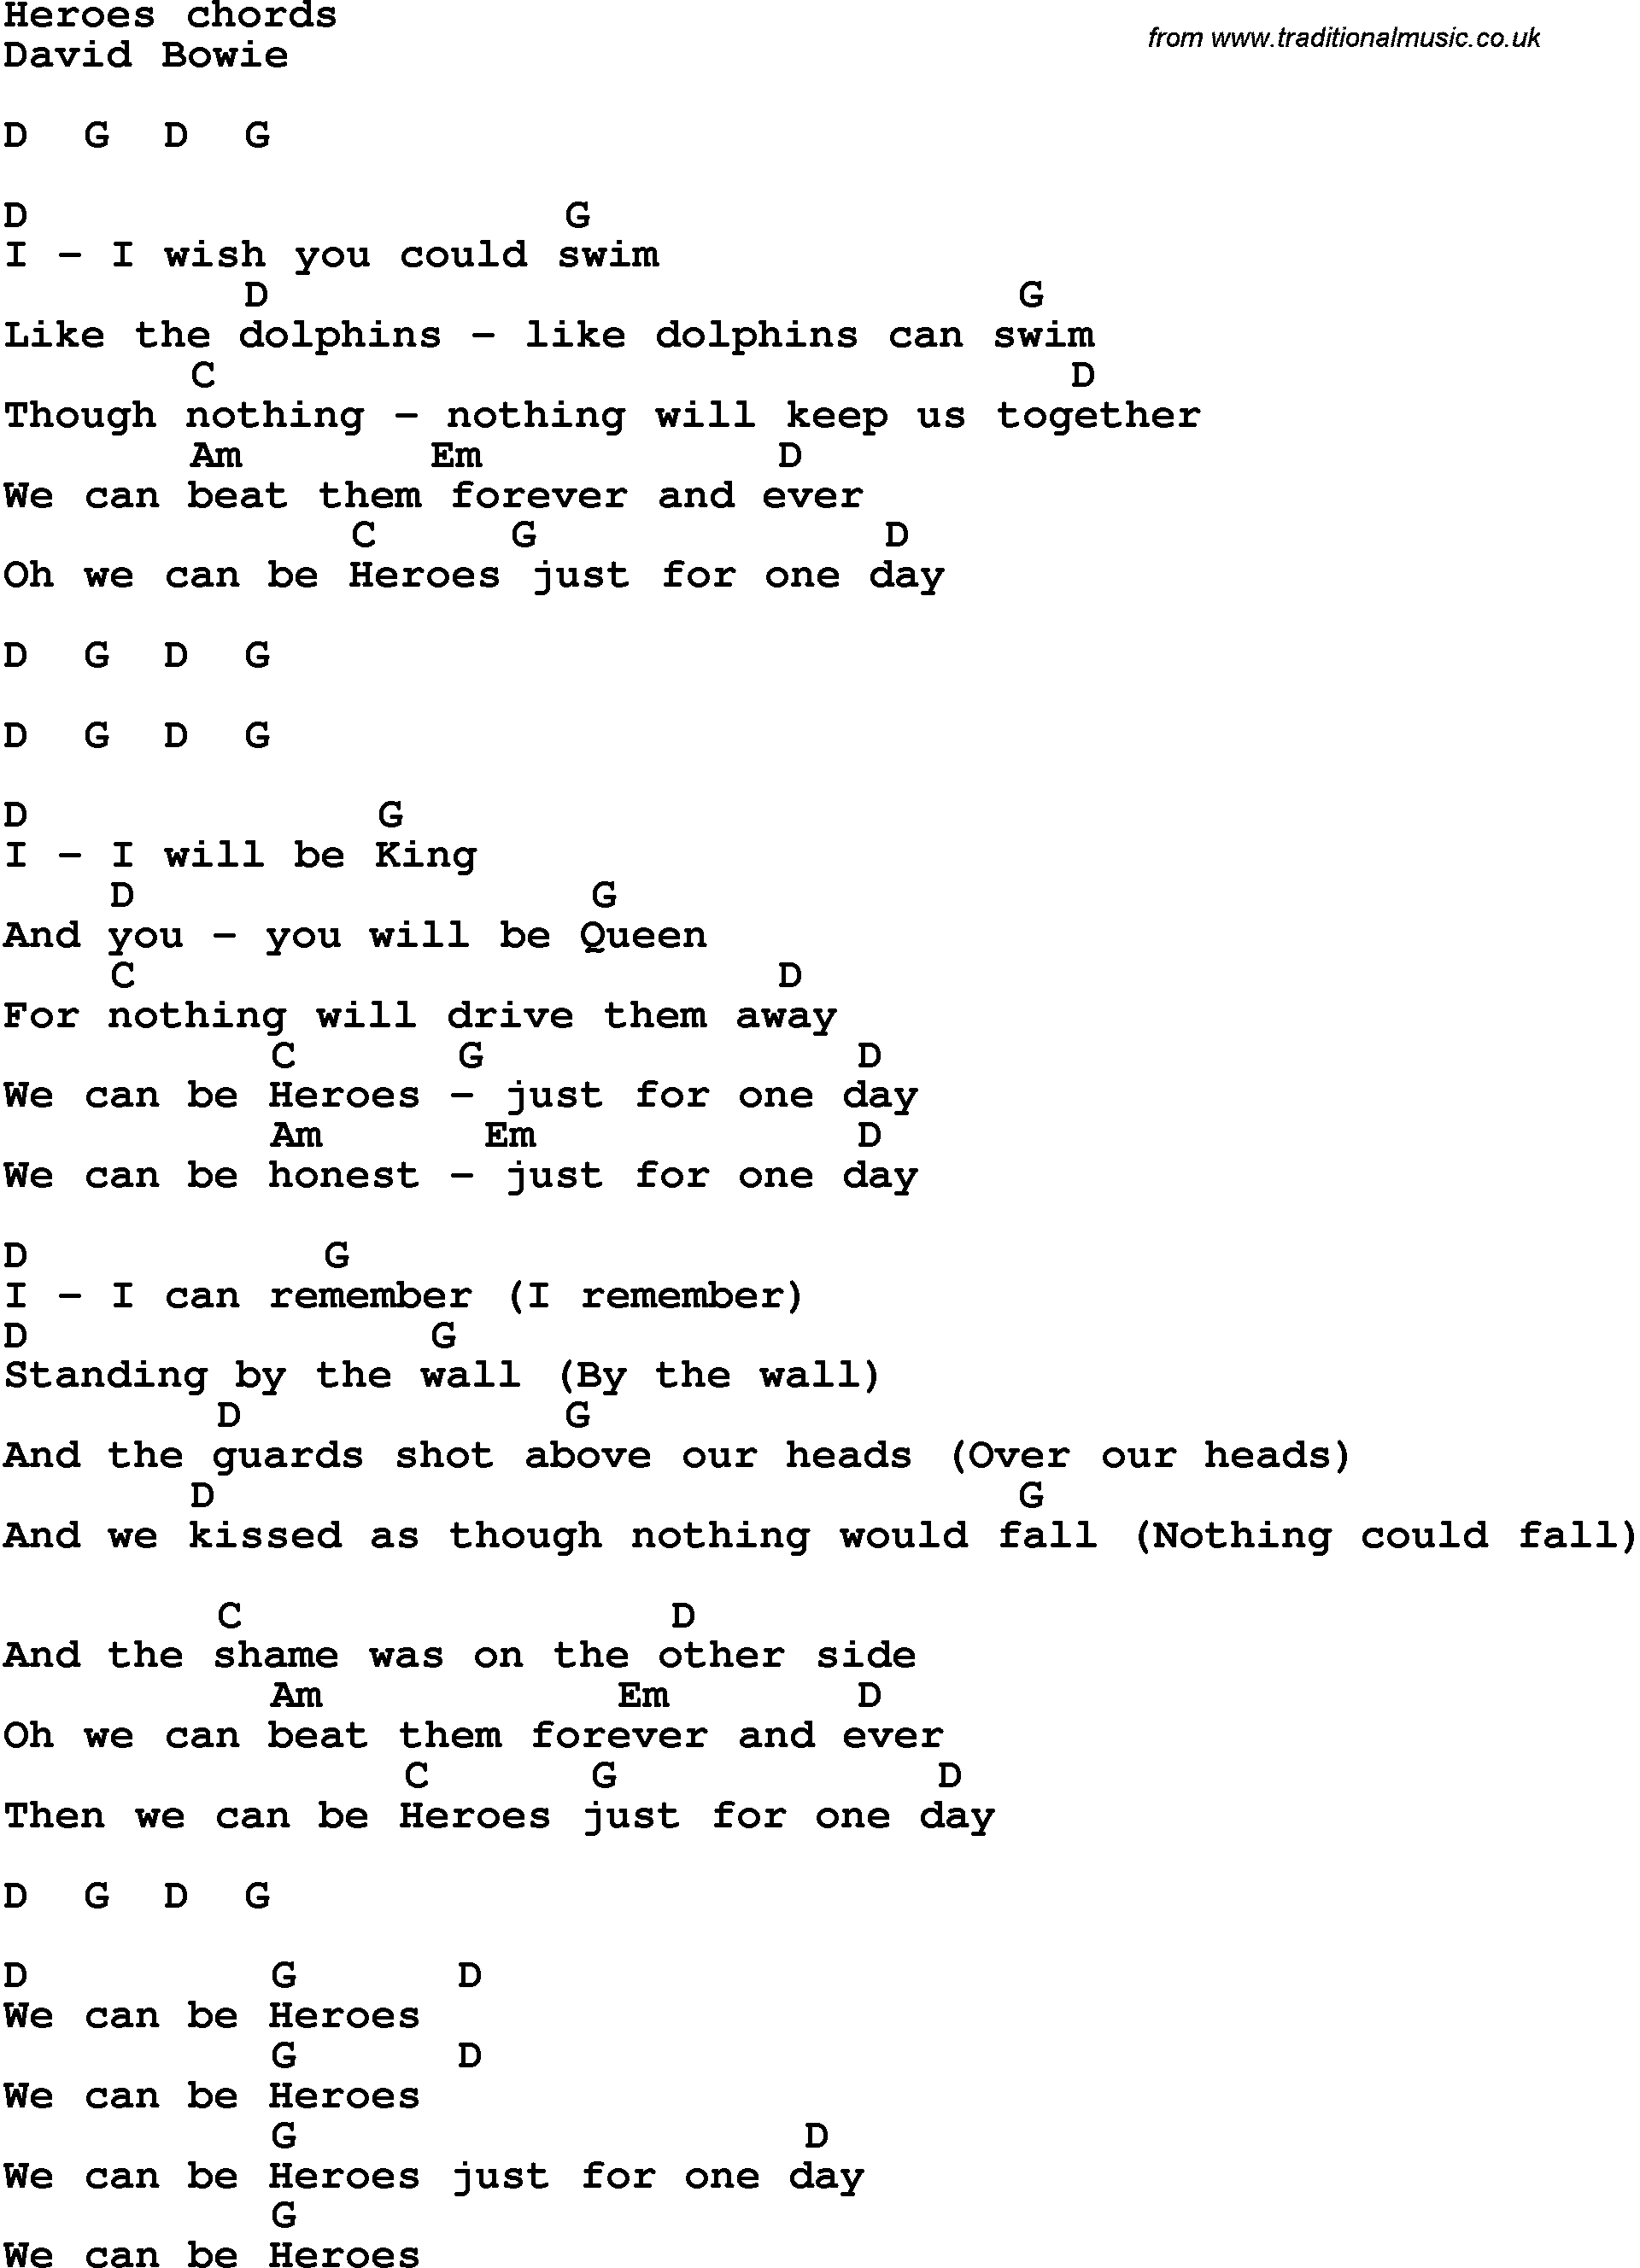 New Hero Song Lyrics With Guitar Chords